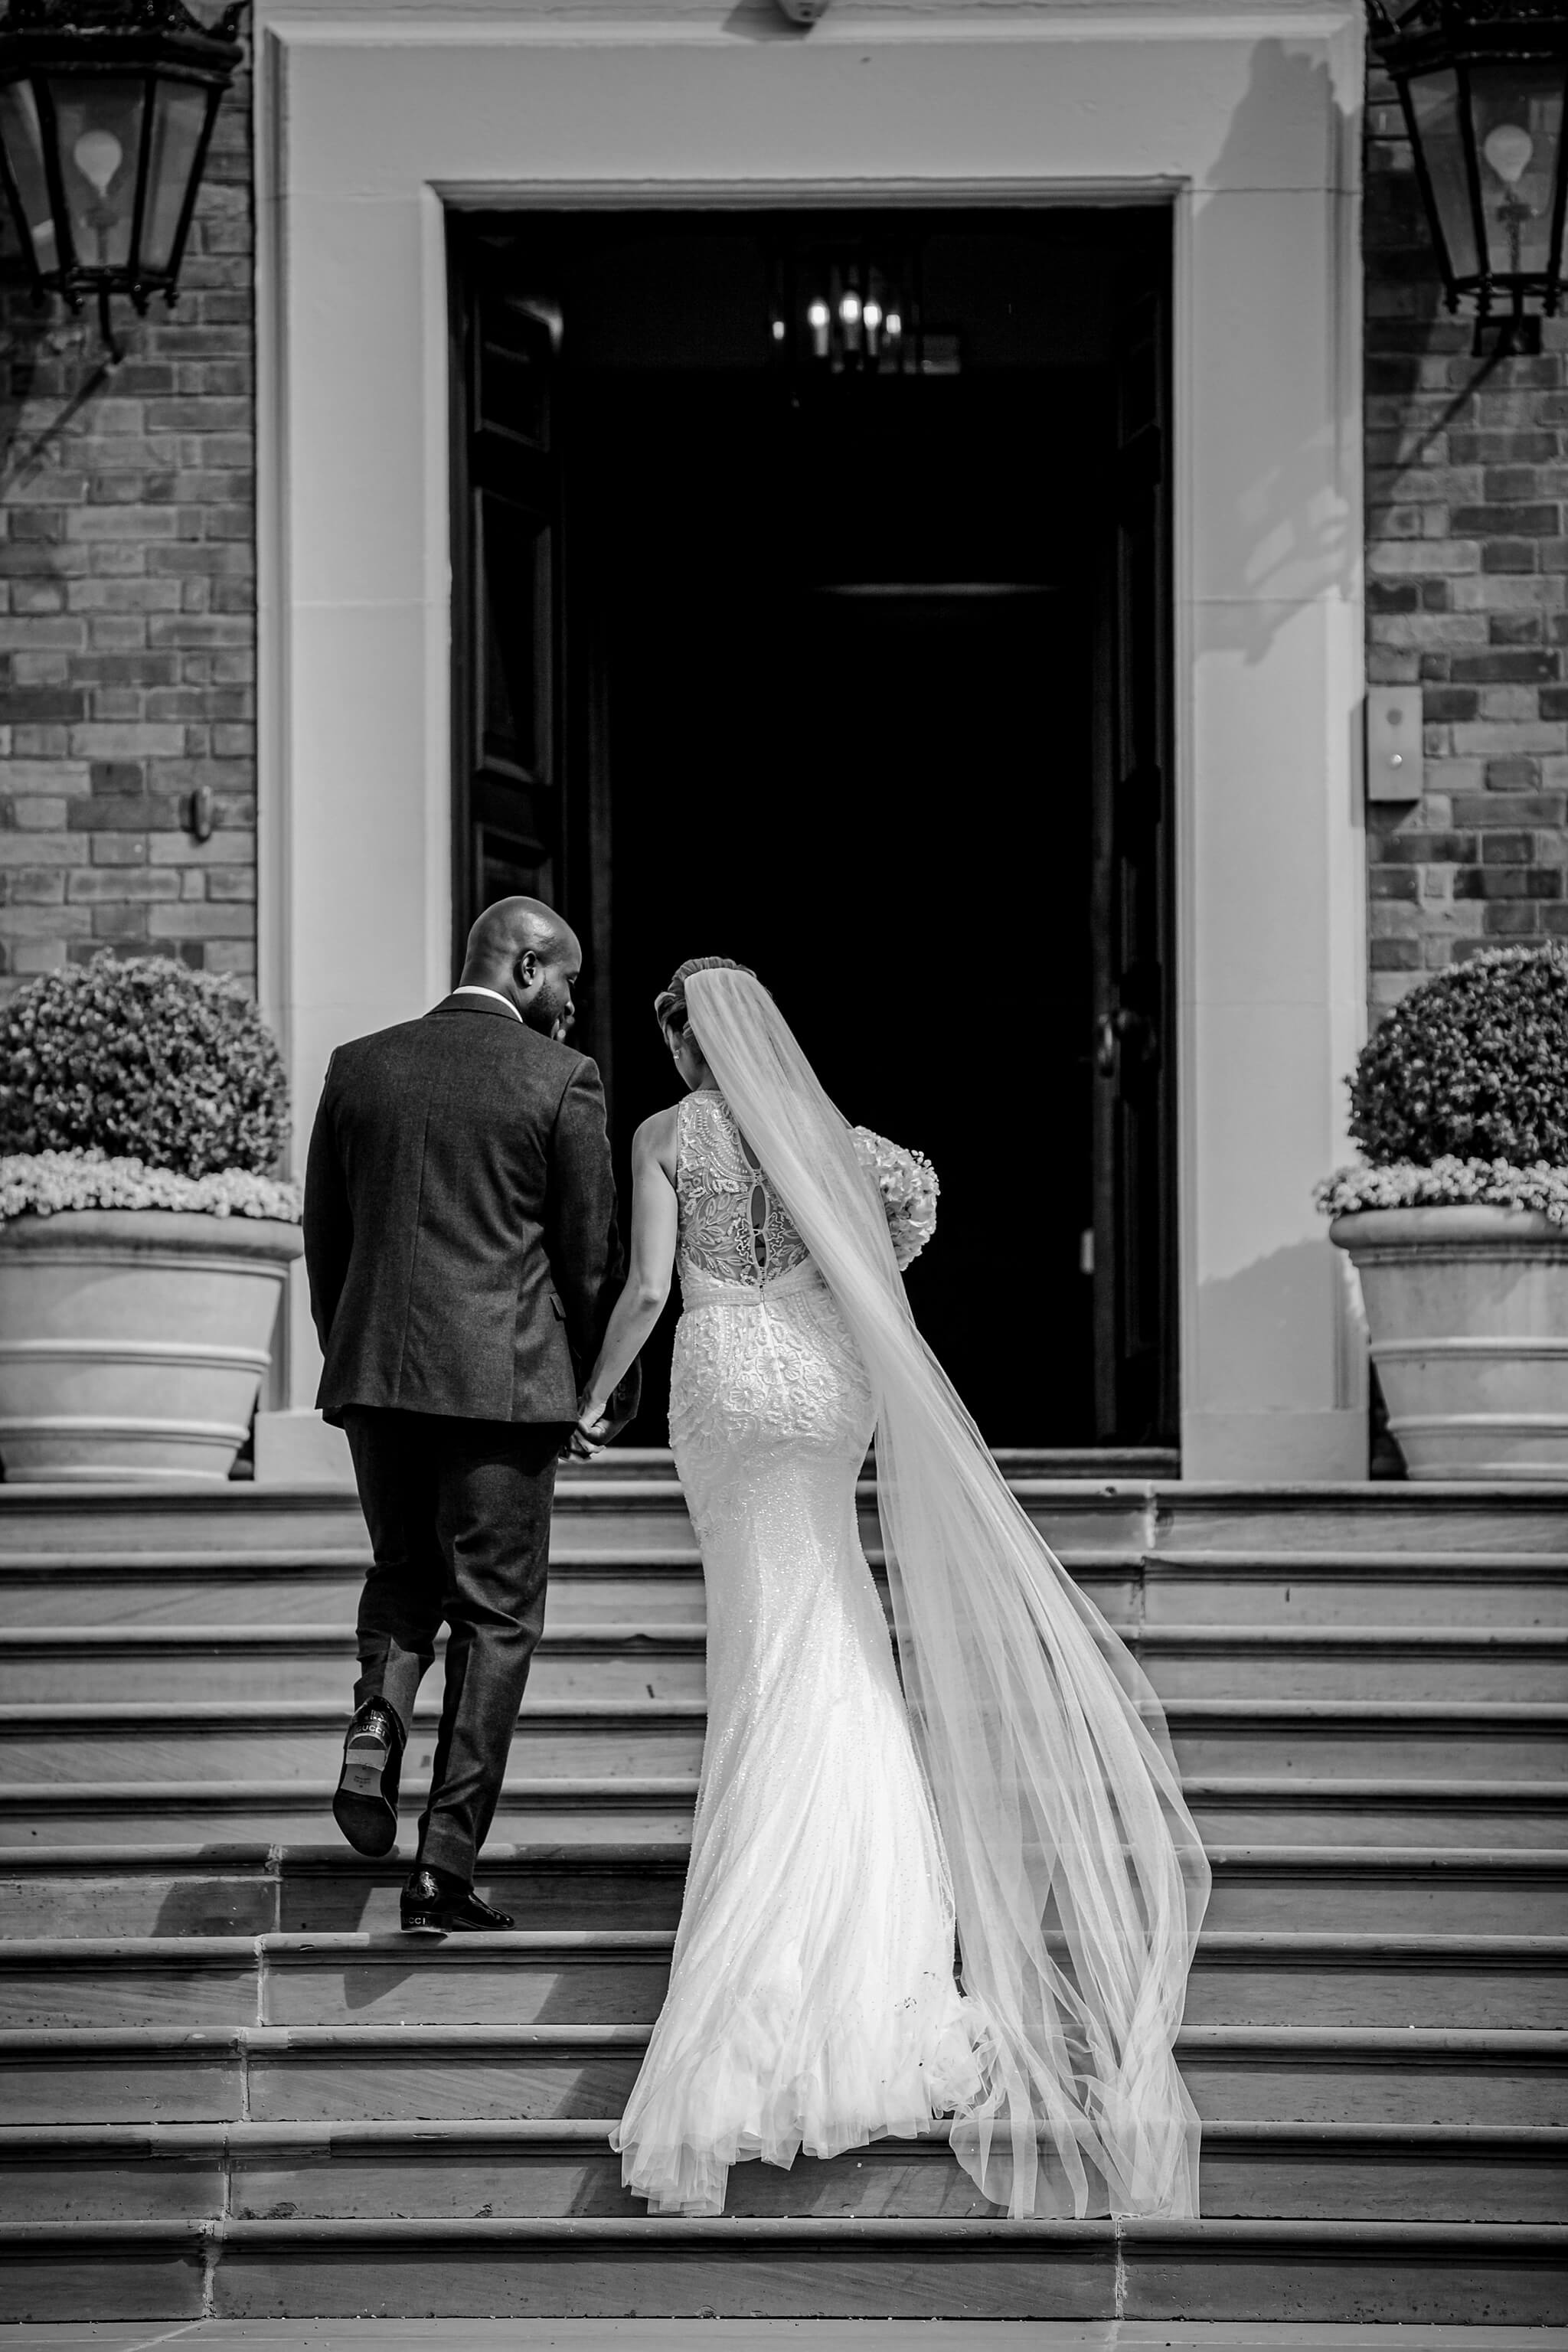 best-wedding-photographers-uk-europe-stanbury-photography-119